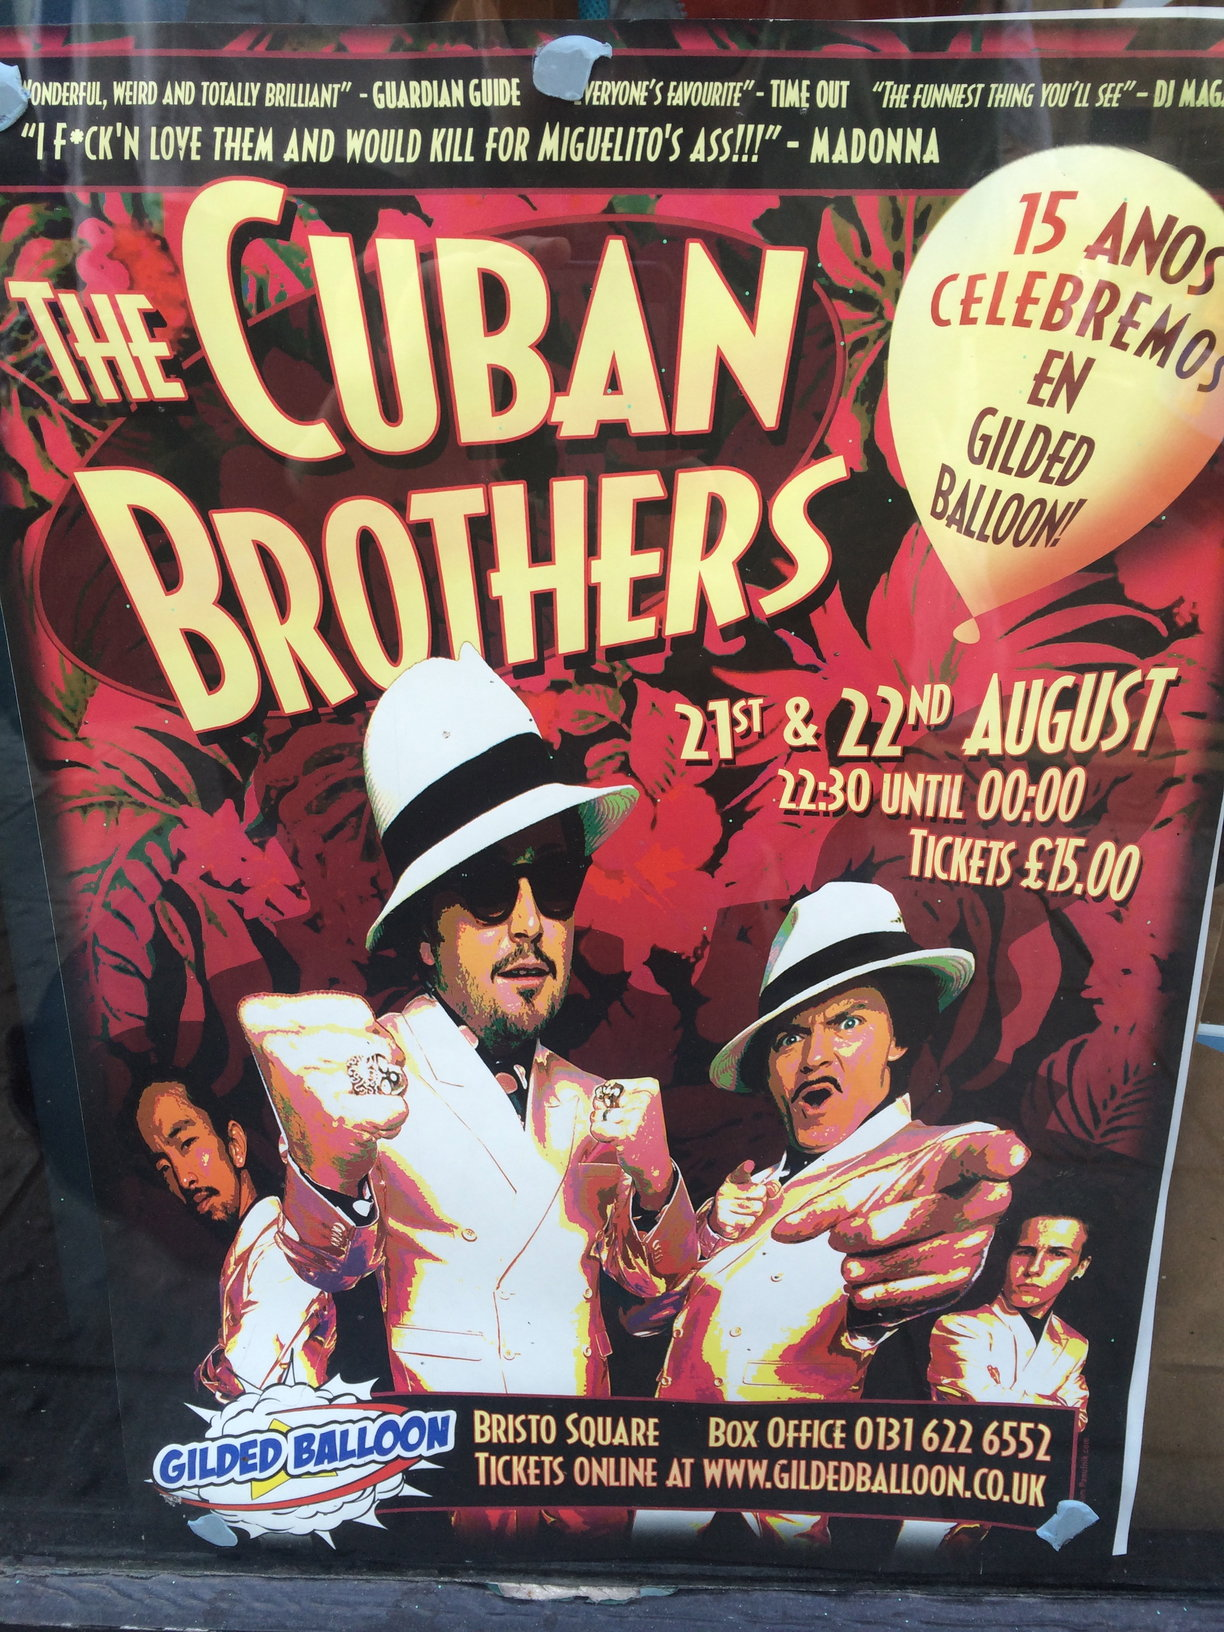 The Cuban Brothers!